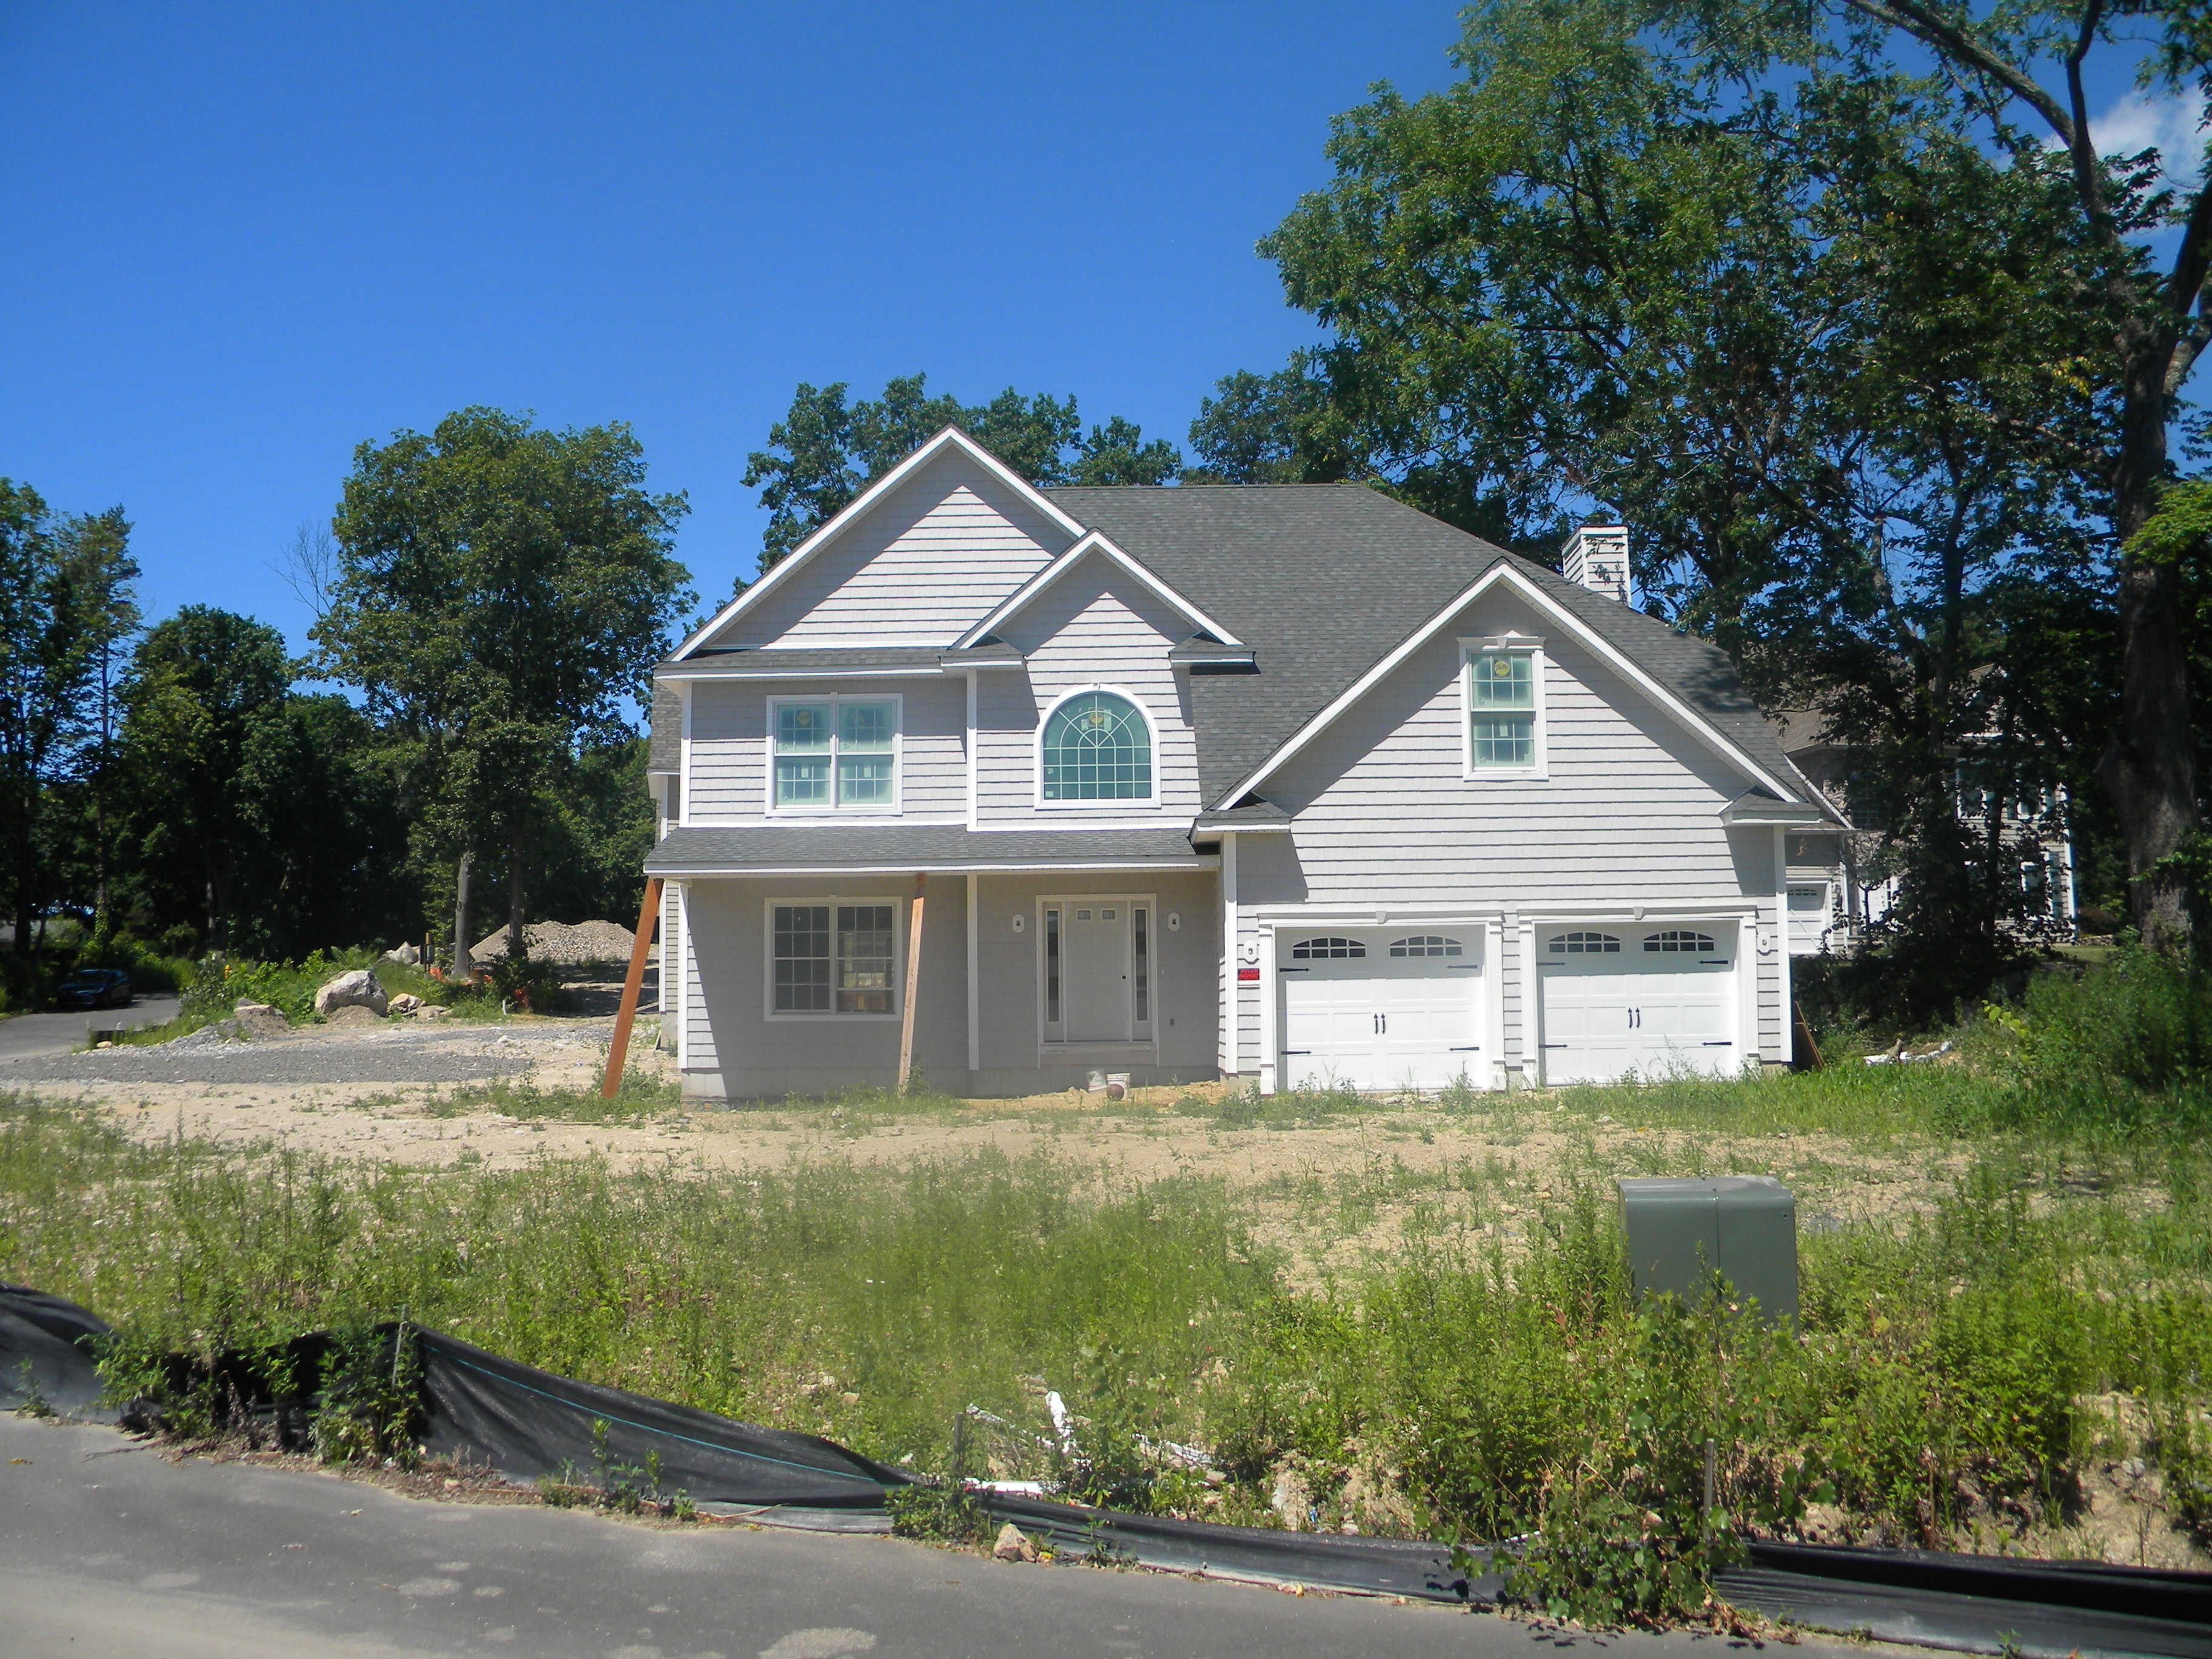 Single Family Home for Sale at New Construction Lot 3 Walnut Ridge Court Stamford, Connecticut, 06904 United States